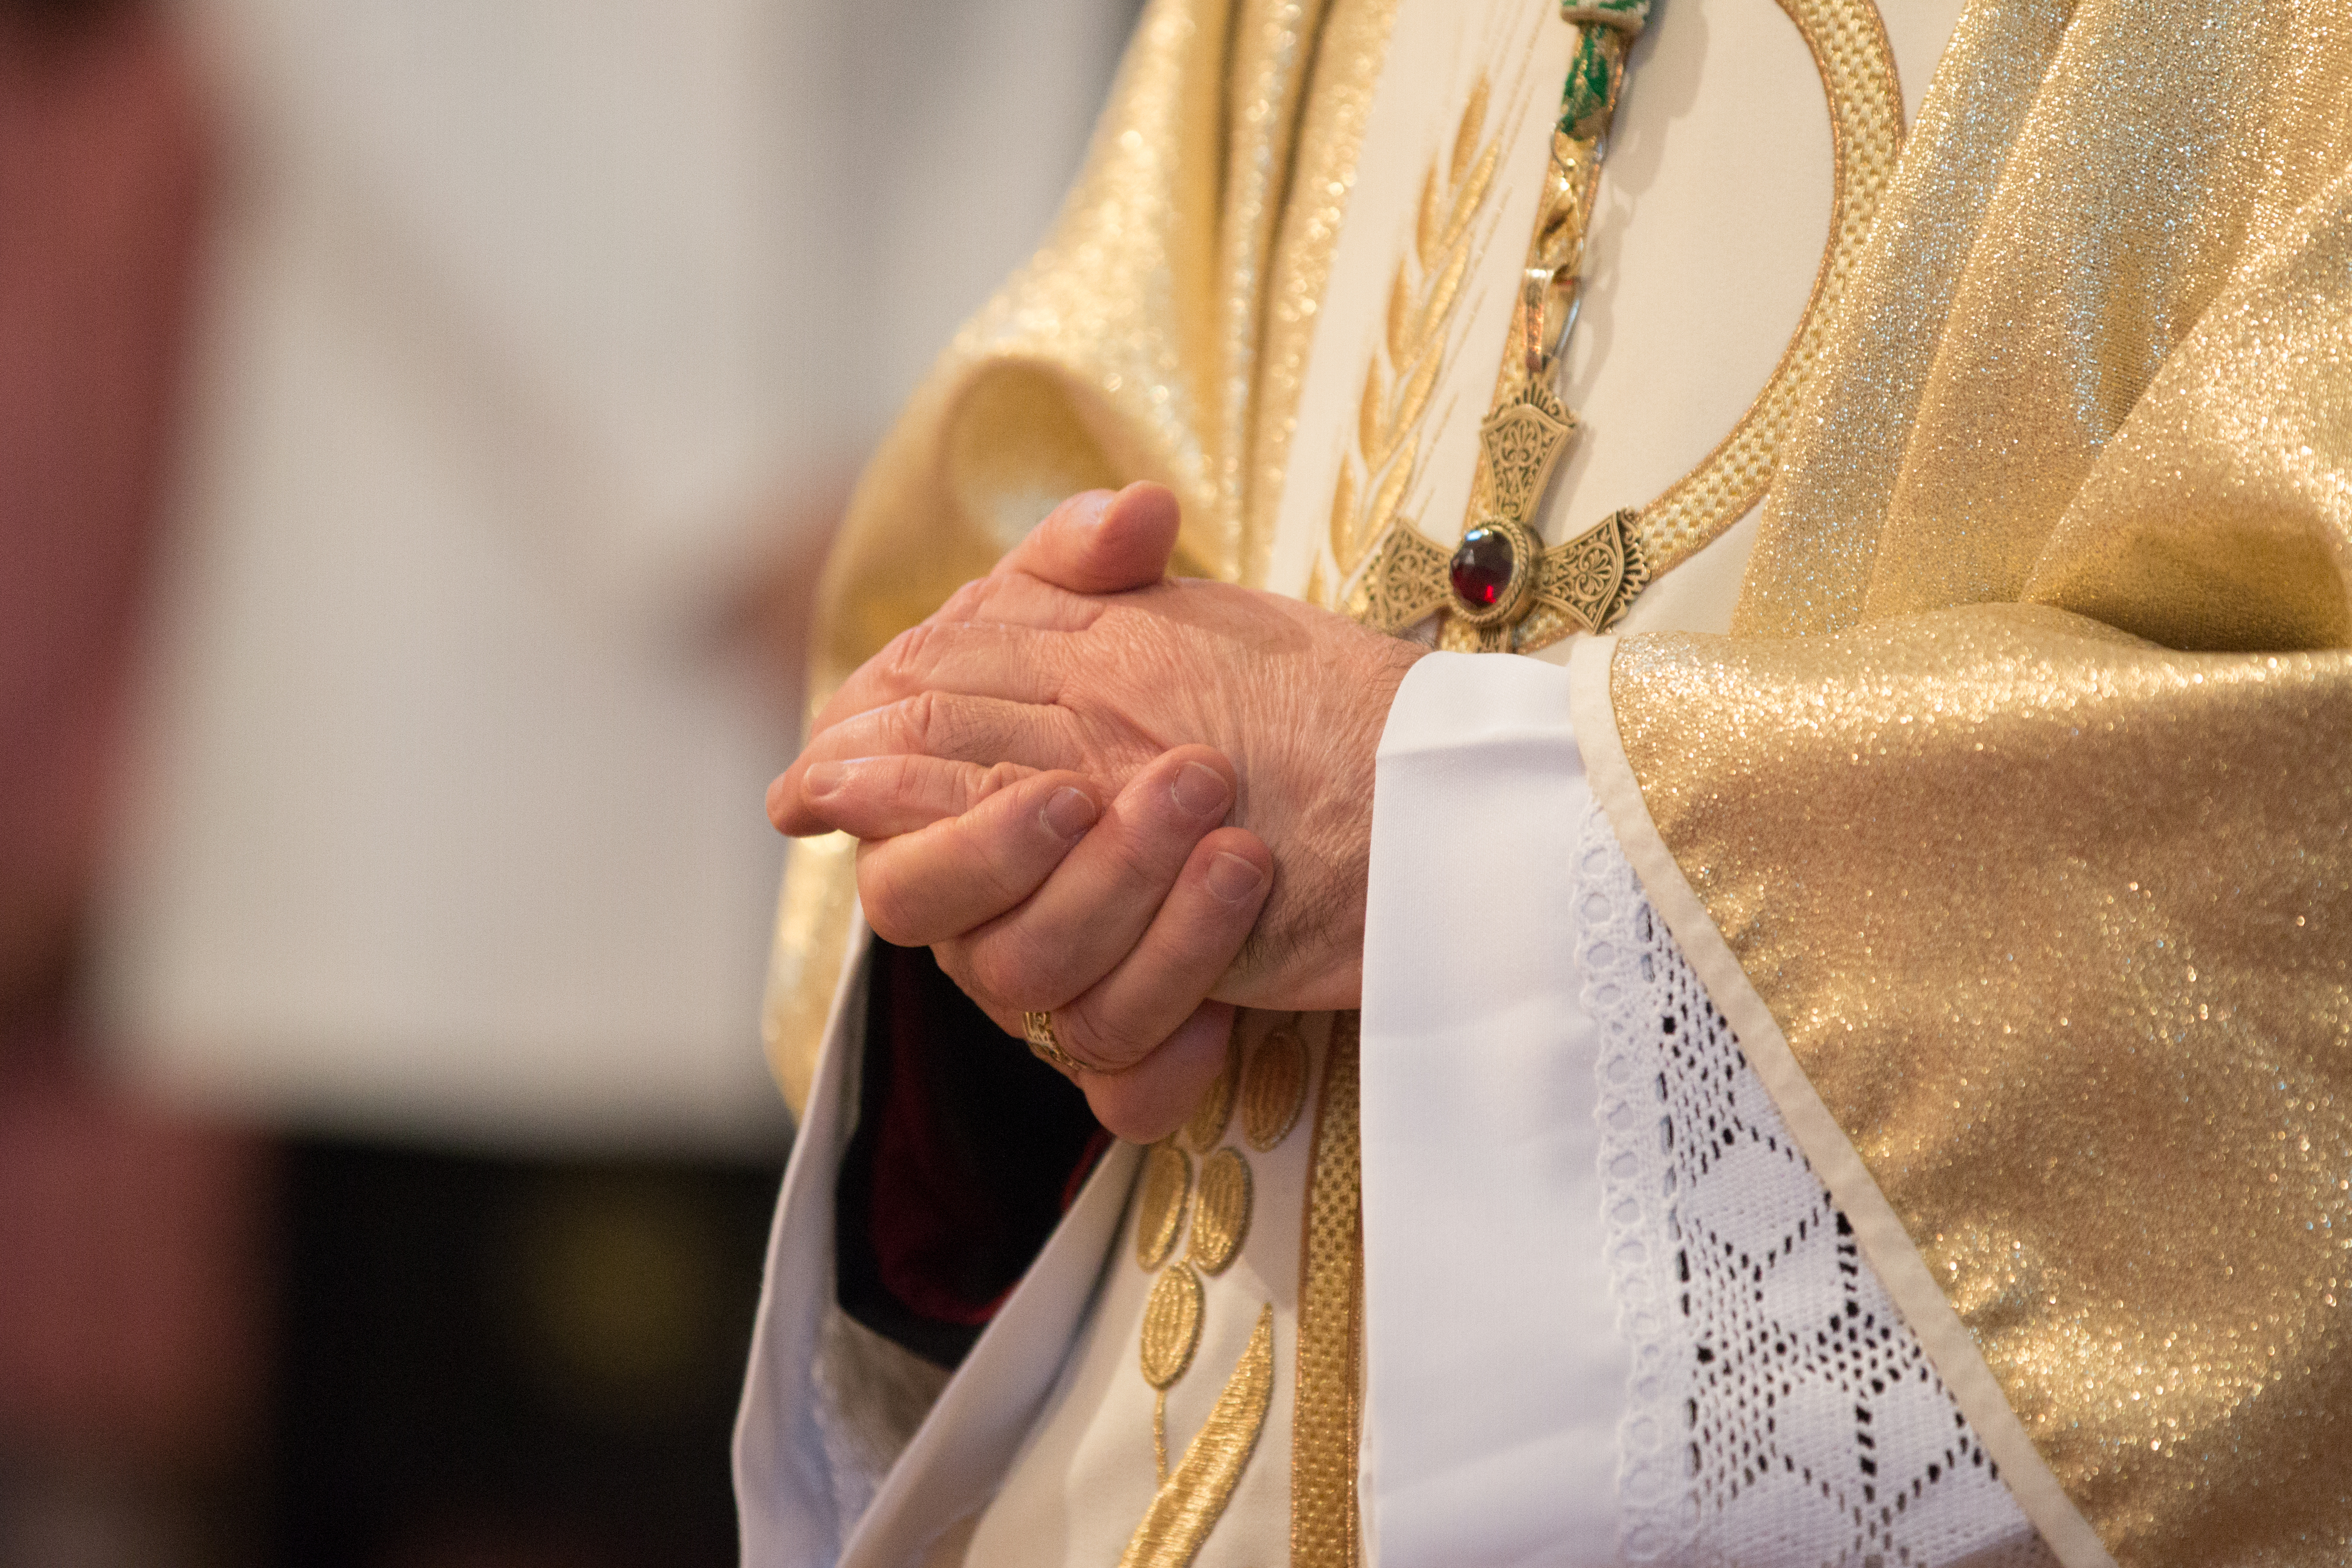 Clergy sexual misconduct